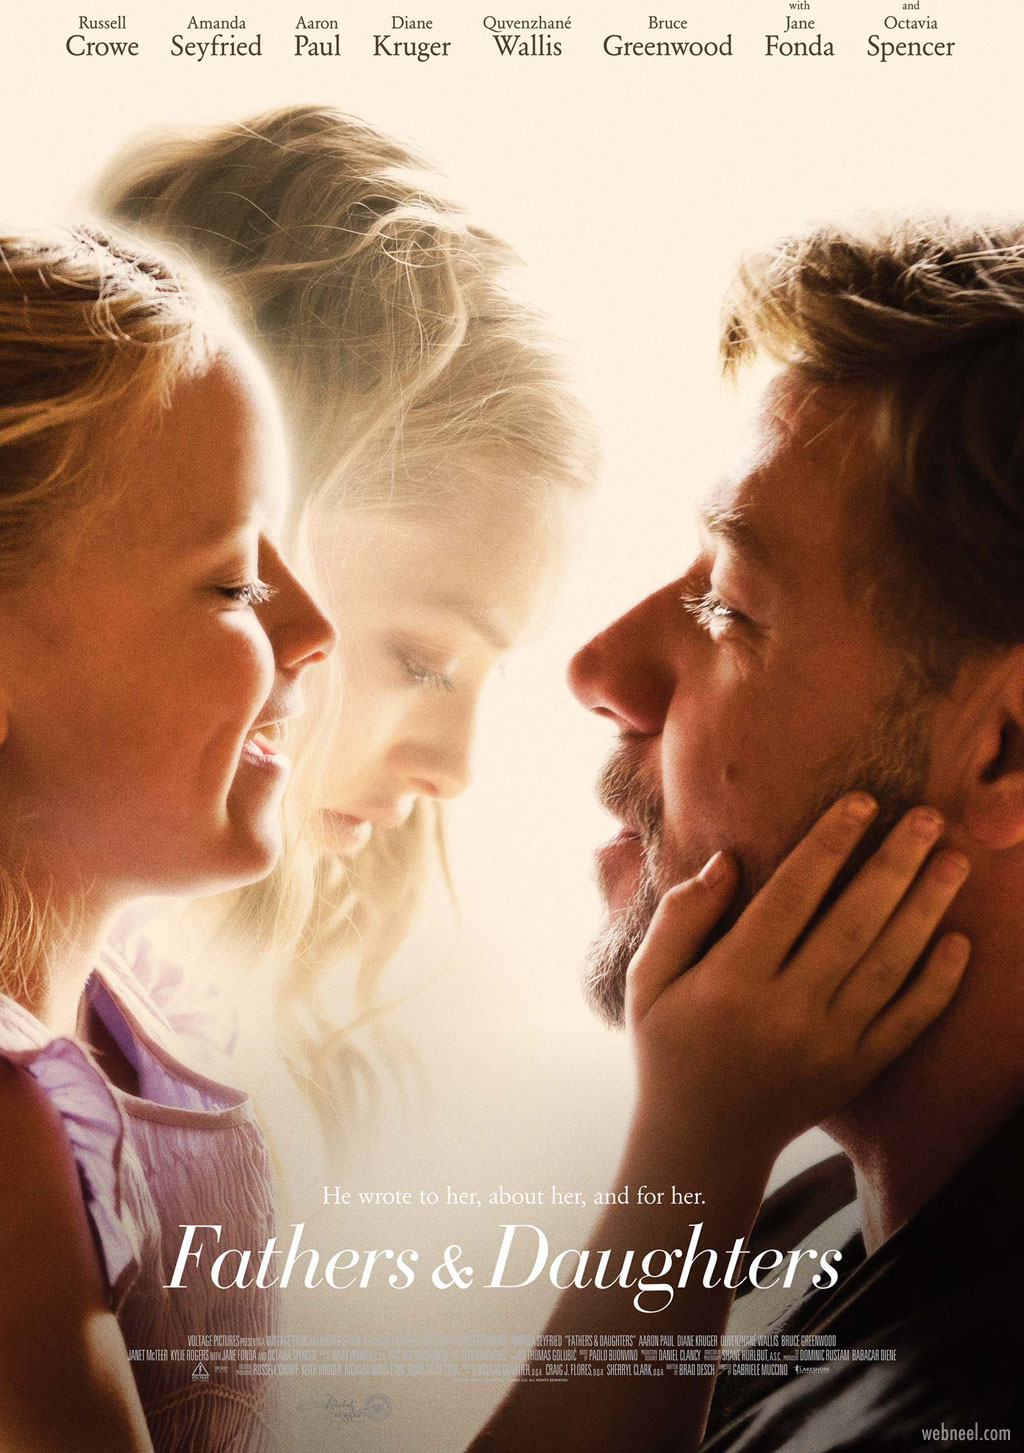 movie poster design fathers daughters relationship